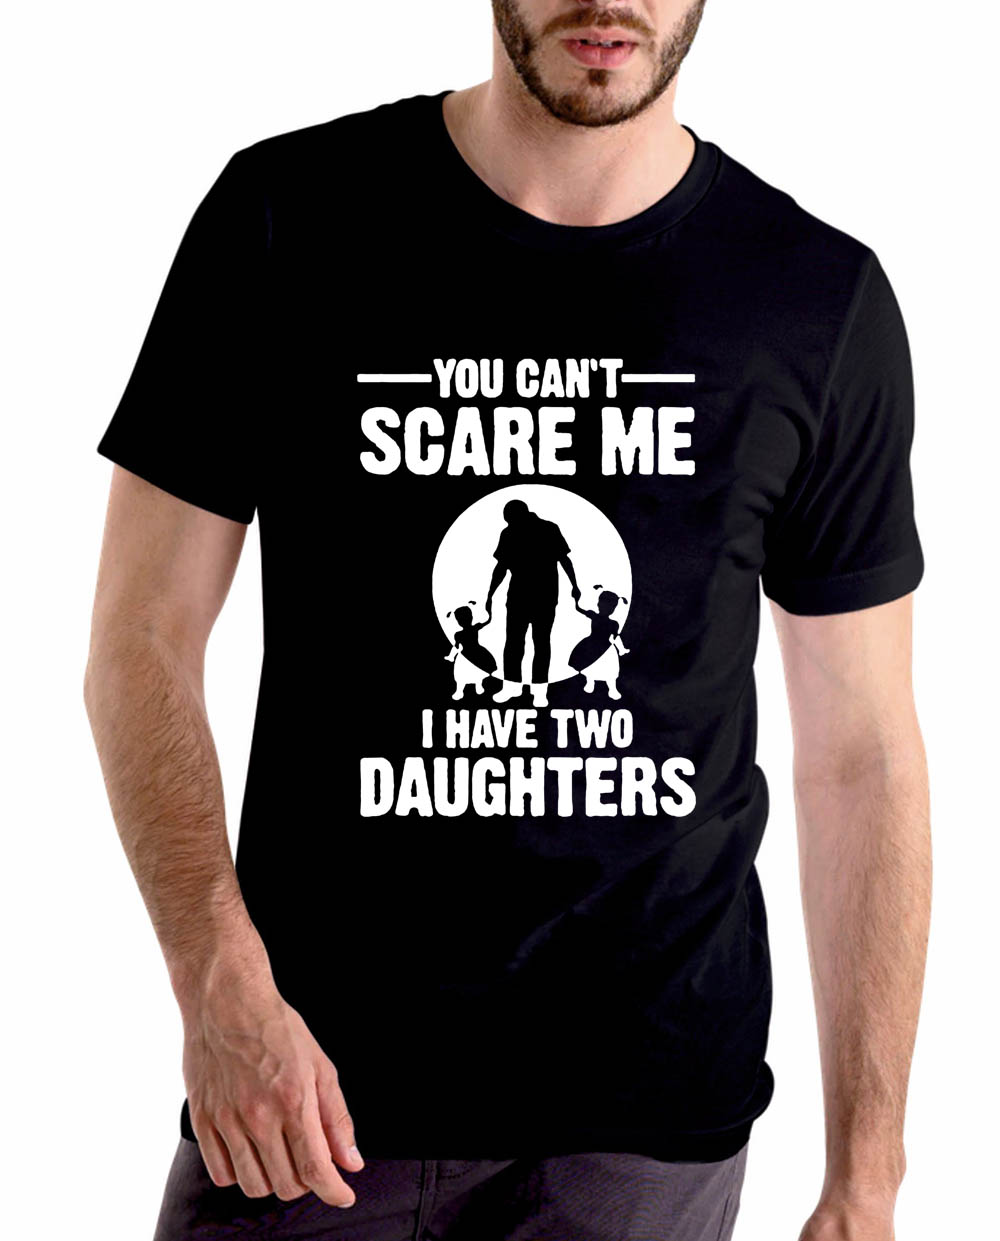 You Can't Scare Me I Have Two Daughter Men Summer Funny T-shirt Dad Fathers Day Gift Print Men's T Shirt Short Sleeve Tops Tees